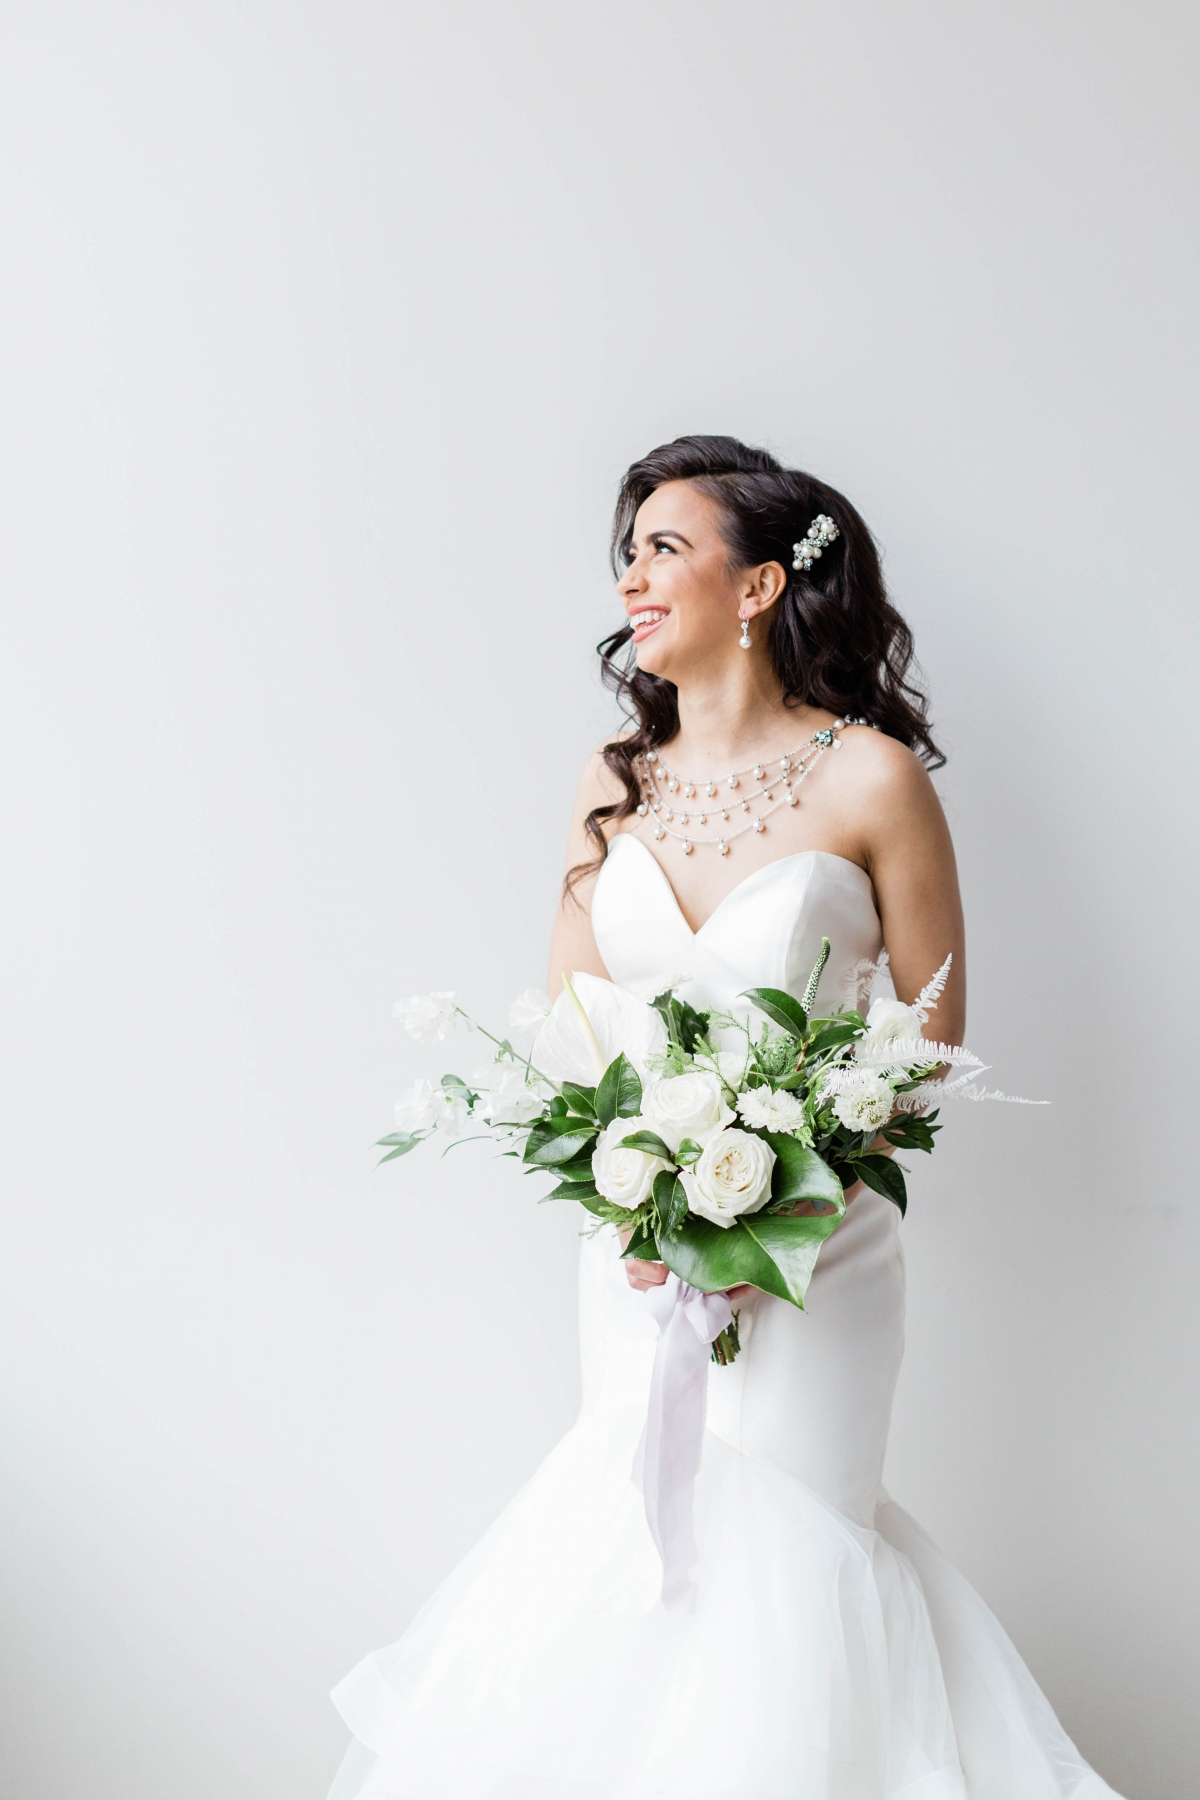 Bride in Allure Bridals Dress